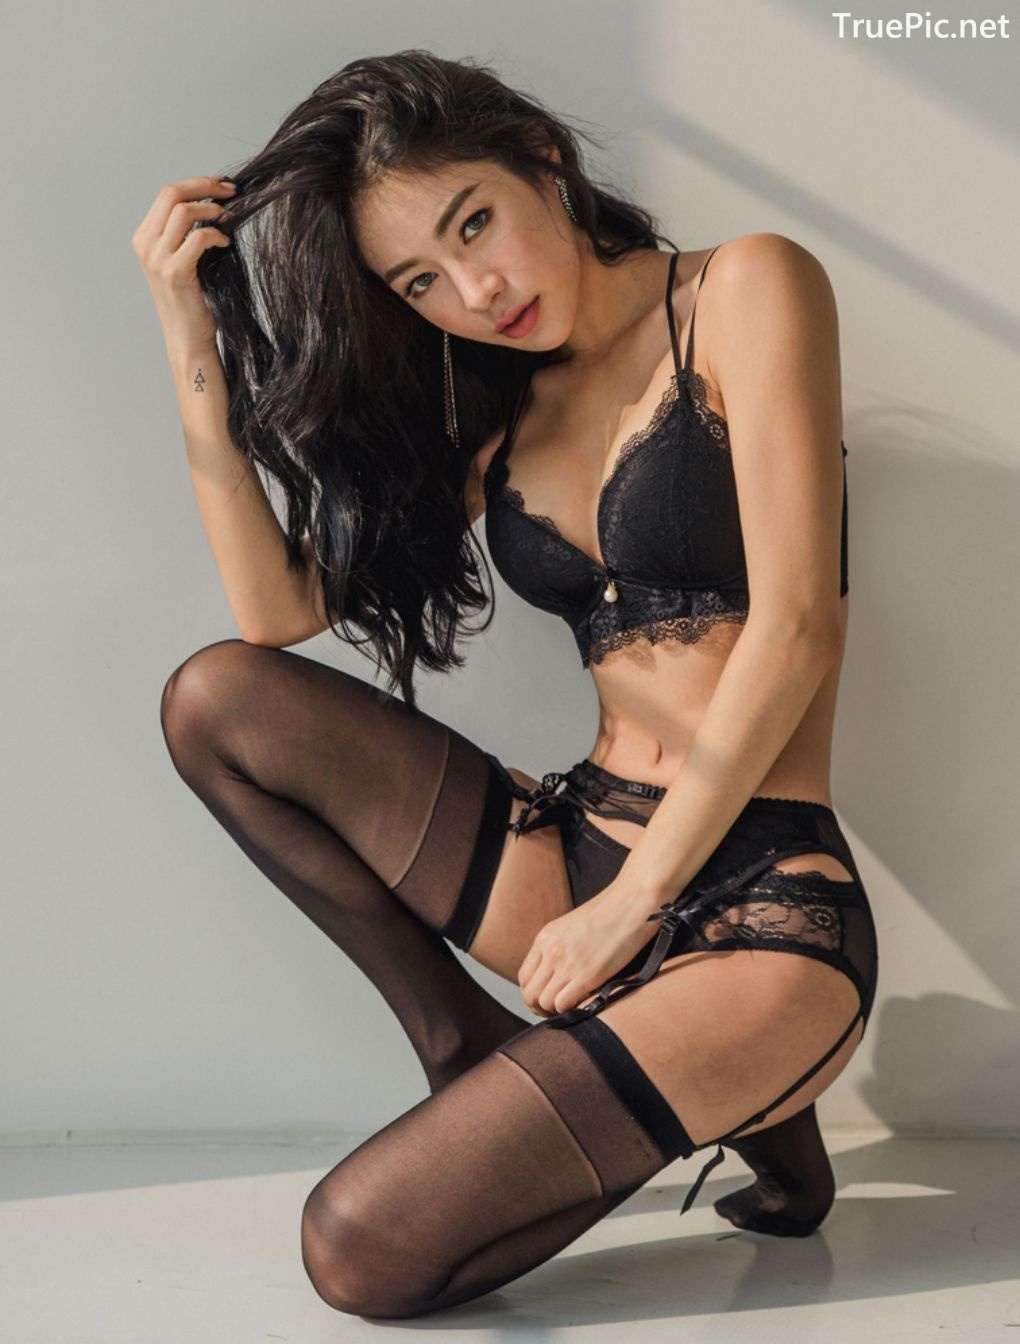 Image-Korean-Fashion-Model-An-Seo-Rin-7-Lingerie-Set-For-A-Week-TruePic.net- Picture-3